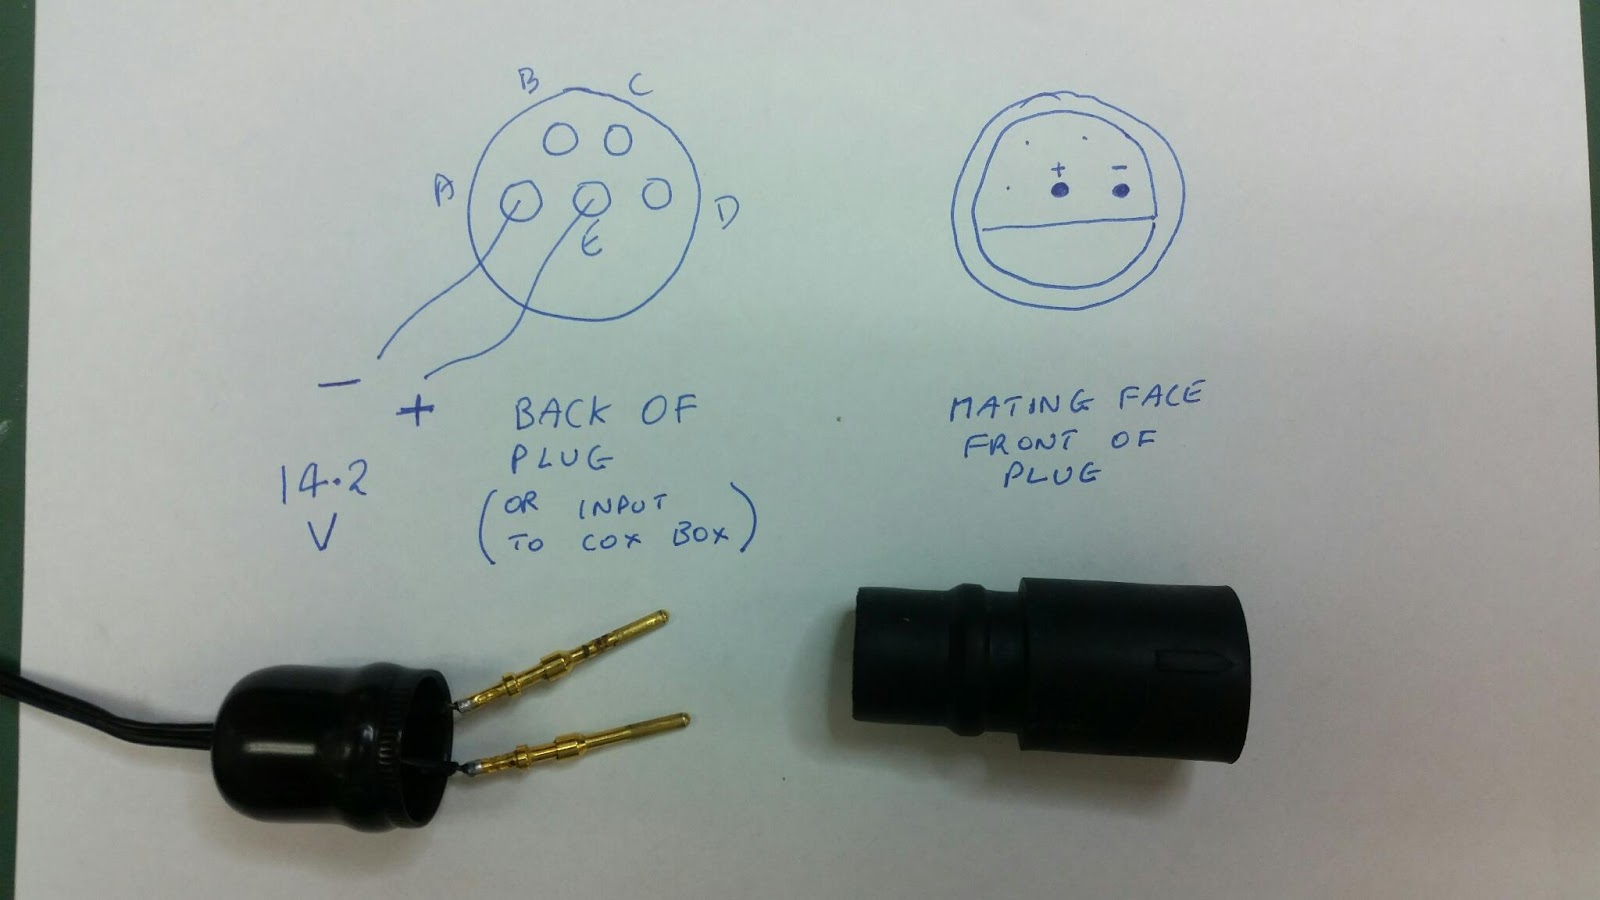 20150916_065546 thomson family blog cox box charger fix cox box wiring diagram at gsmx.co